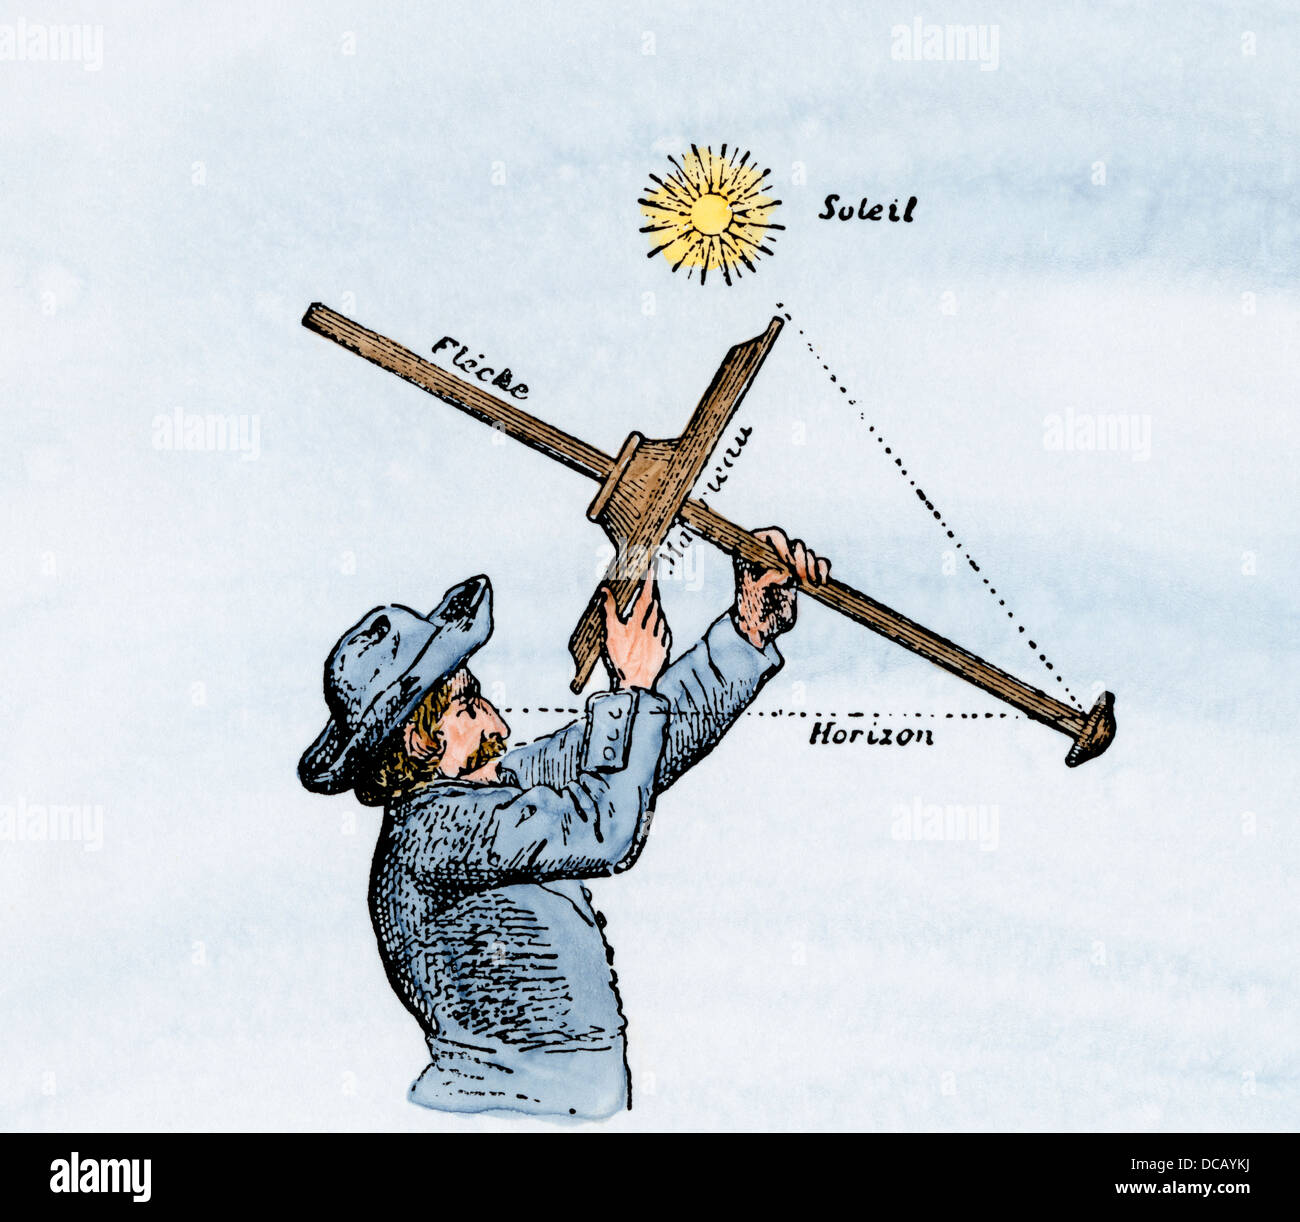 Navigator finding his position by sighting on the sun with a backstaff. Hand-colored woodcut - Stock Image